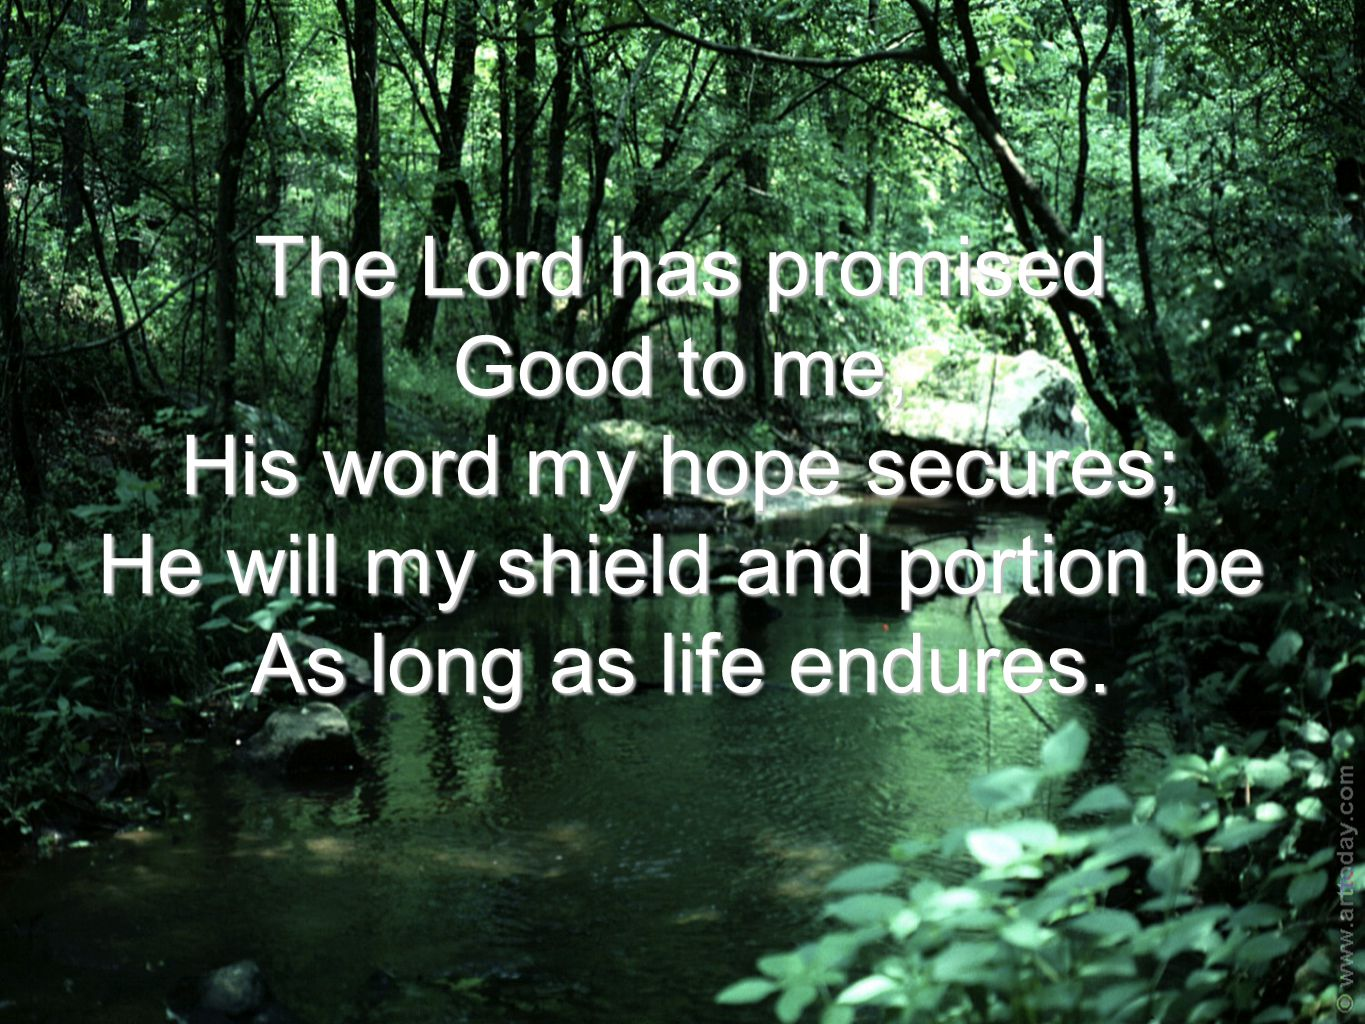 The Lord has promised Good to me, His word my hope secures; He will my shield and portion be As long as life endures.